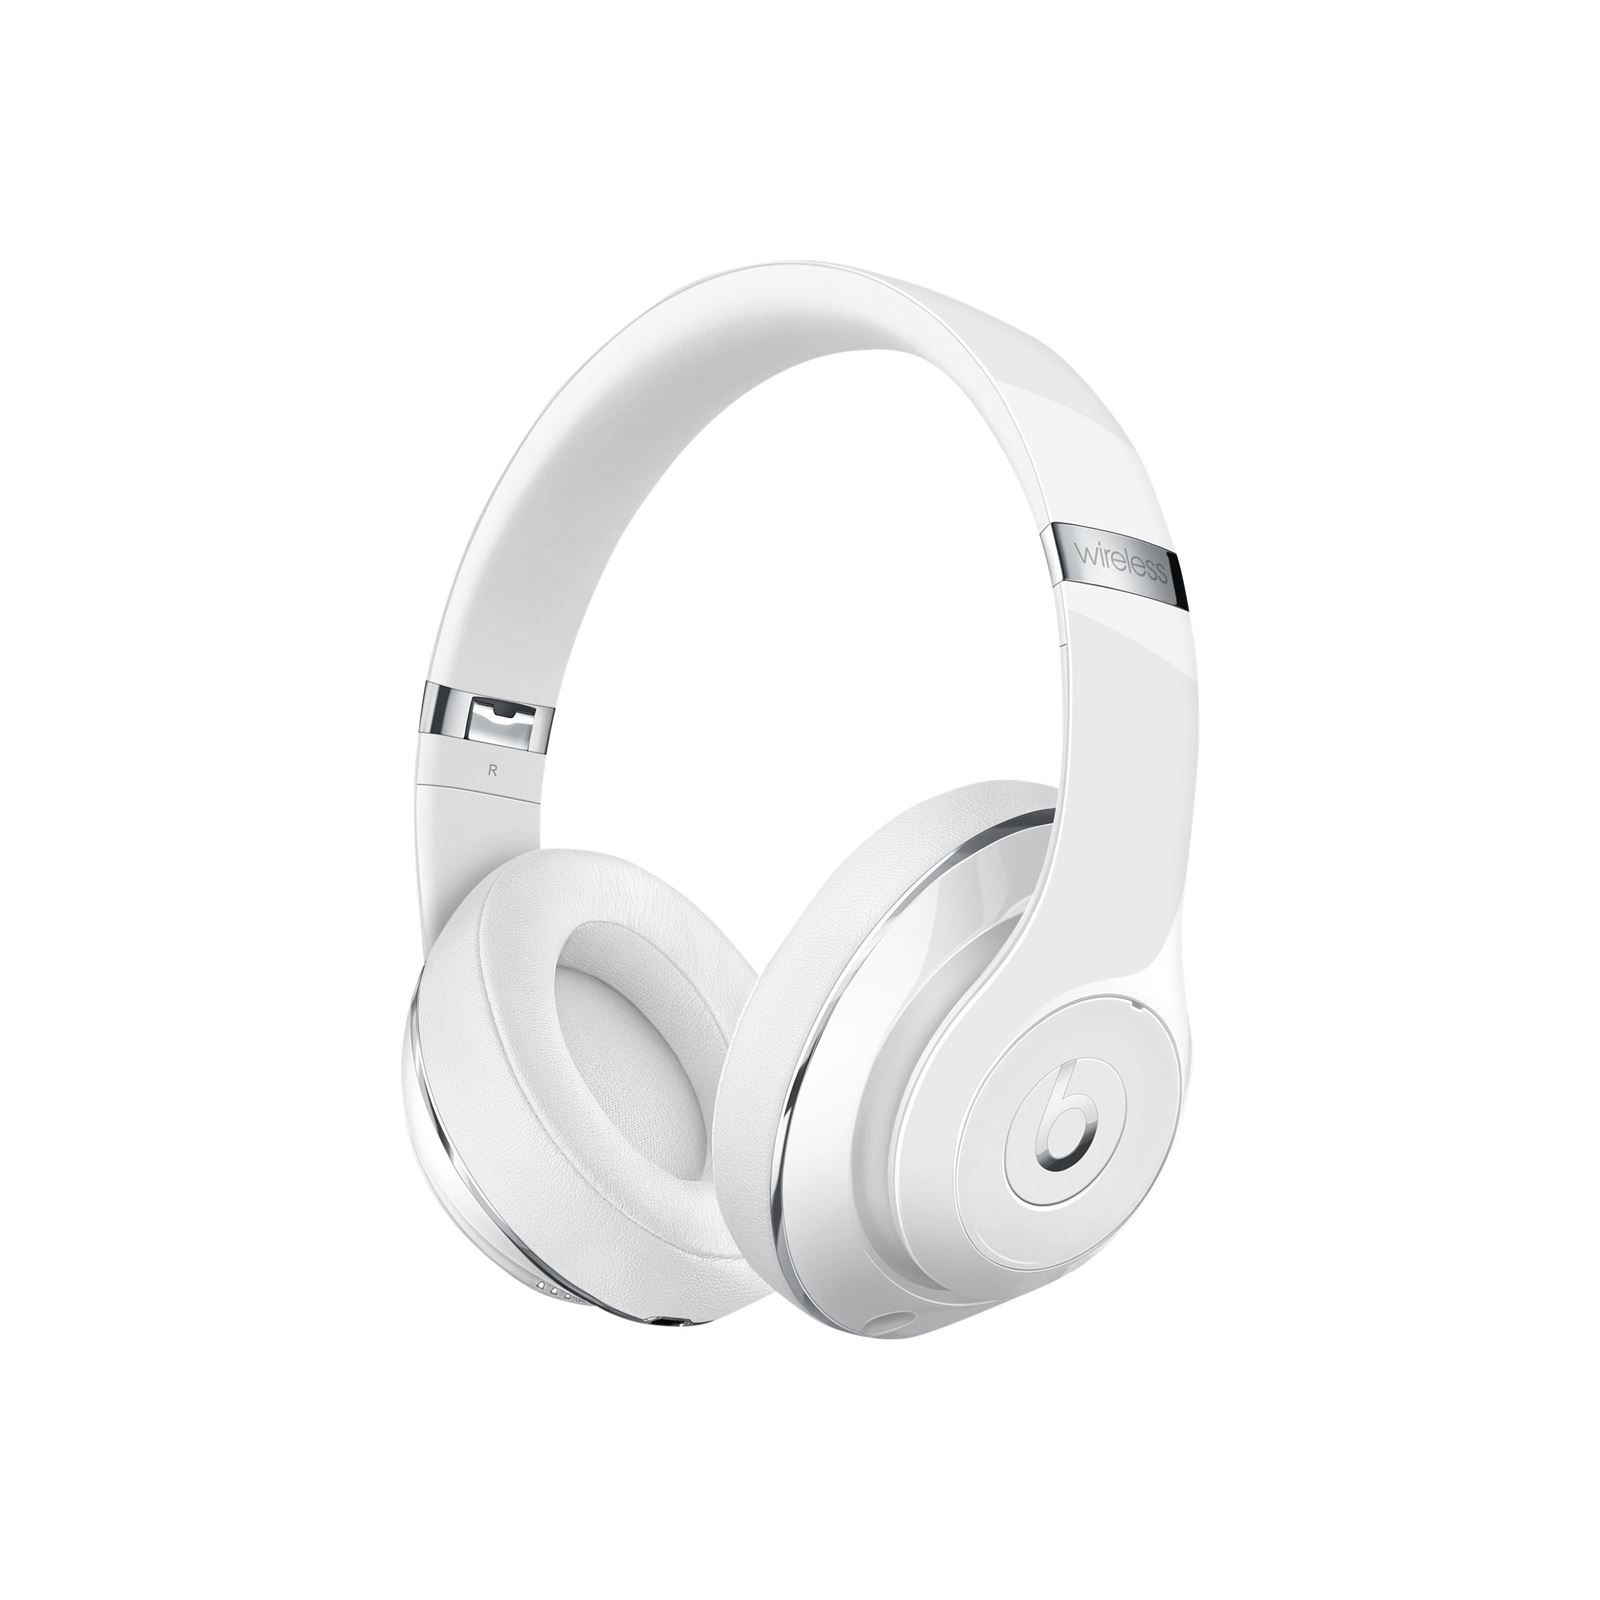 Beats Studio Wireless Headphones - Gloss White